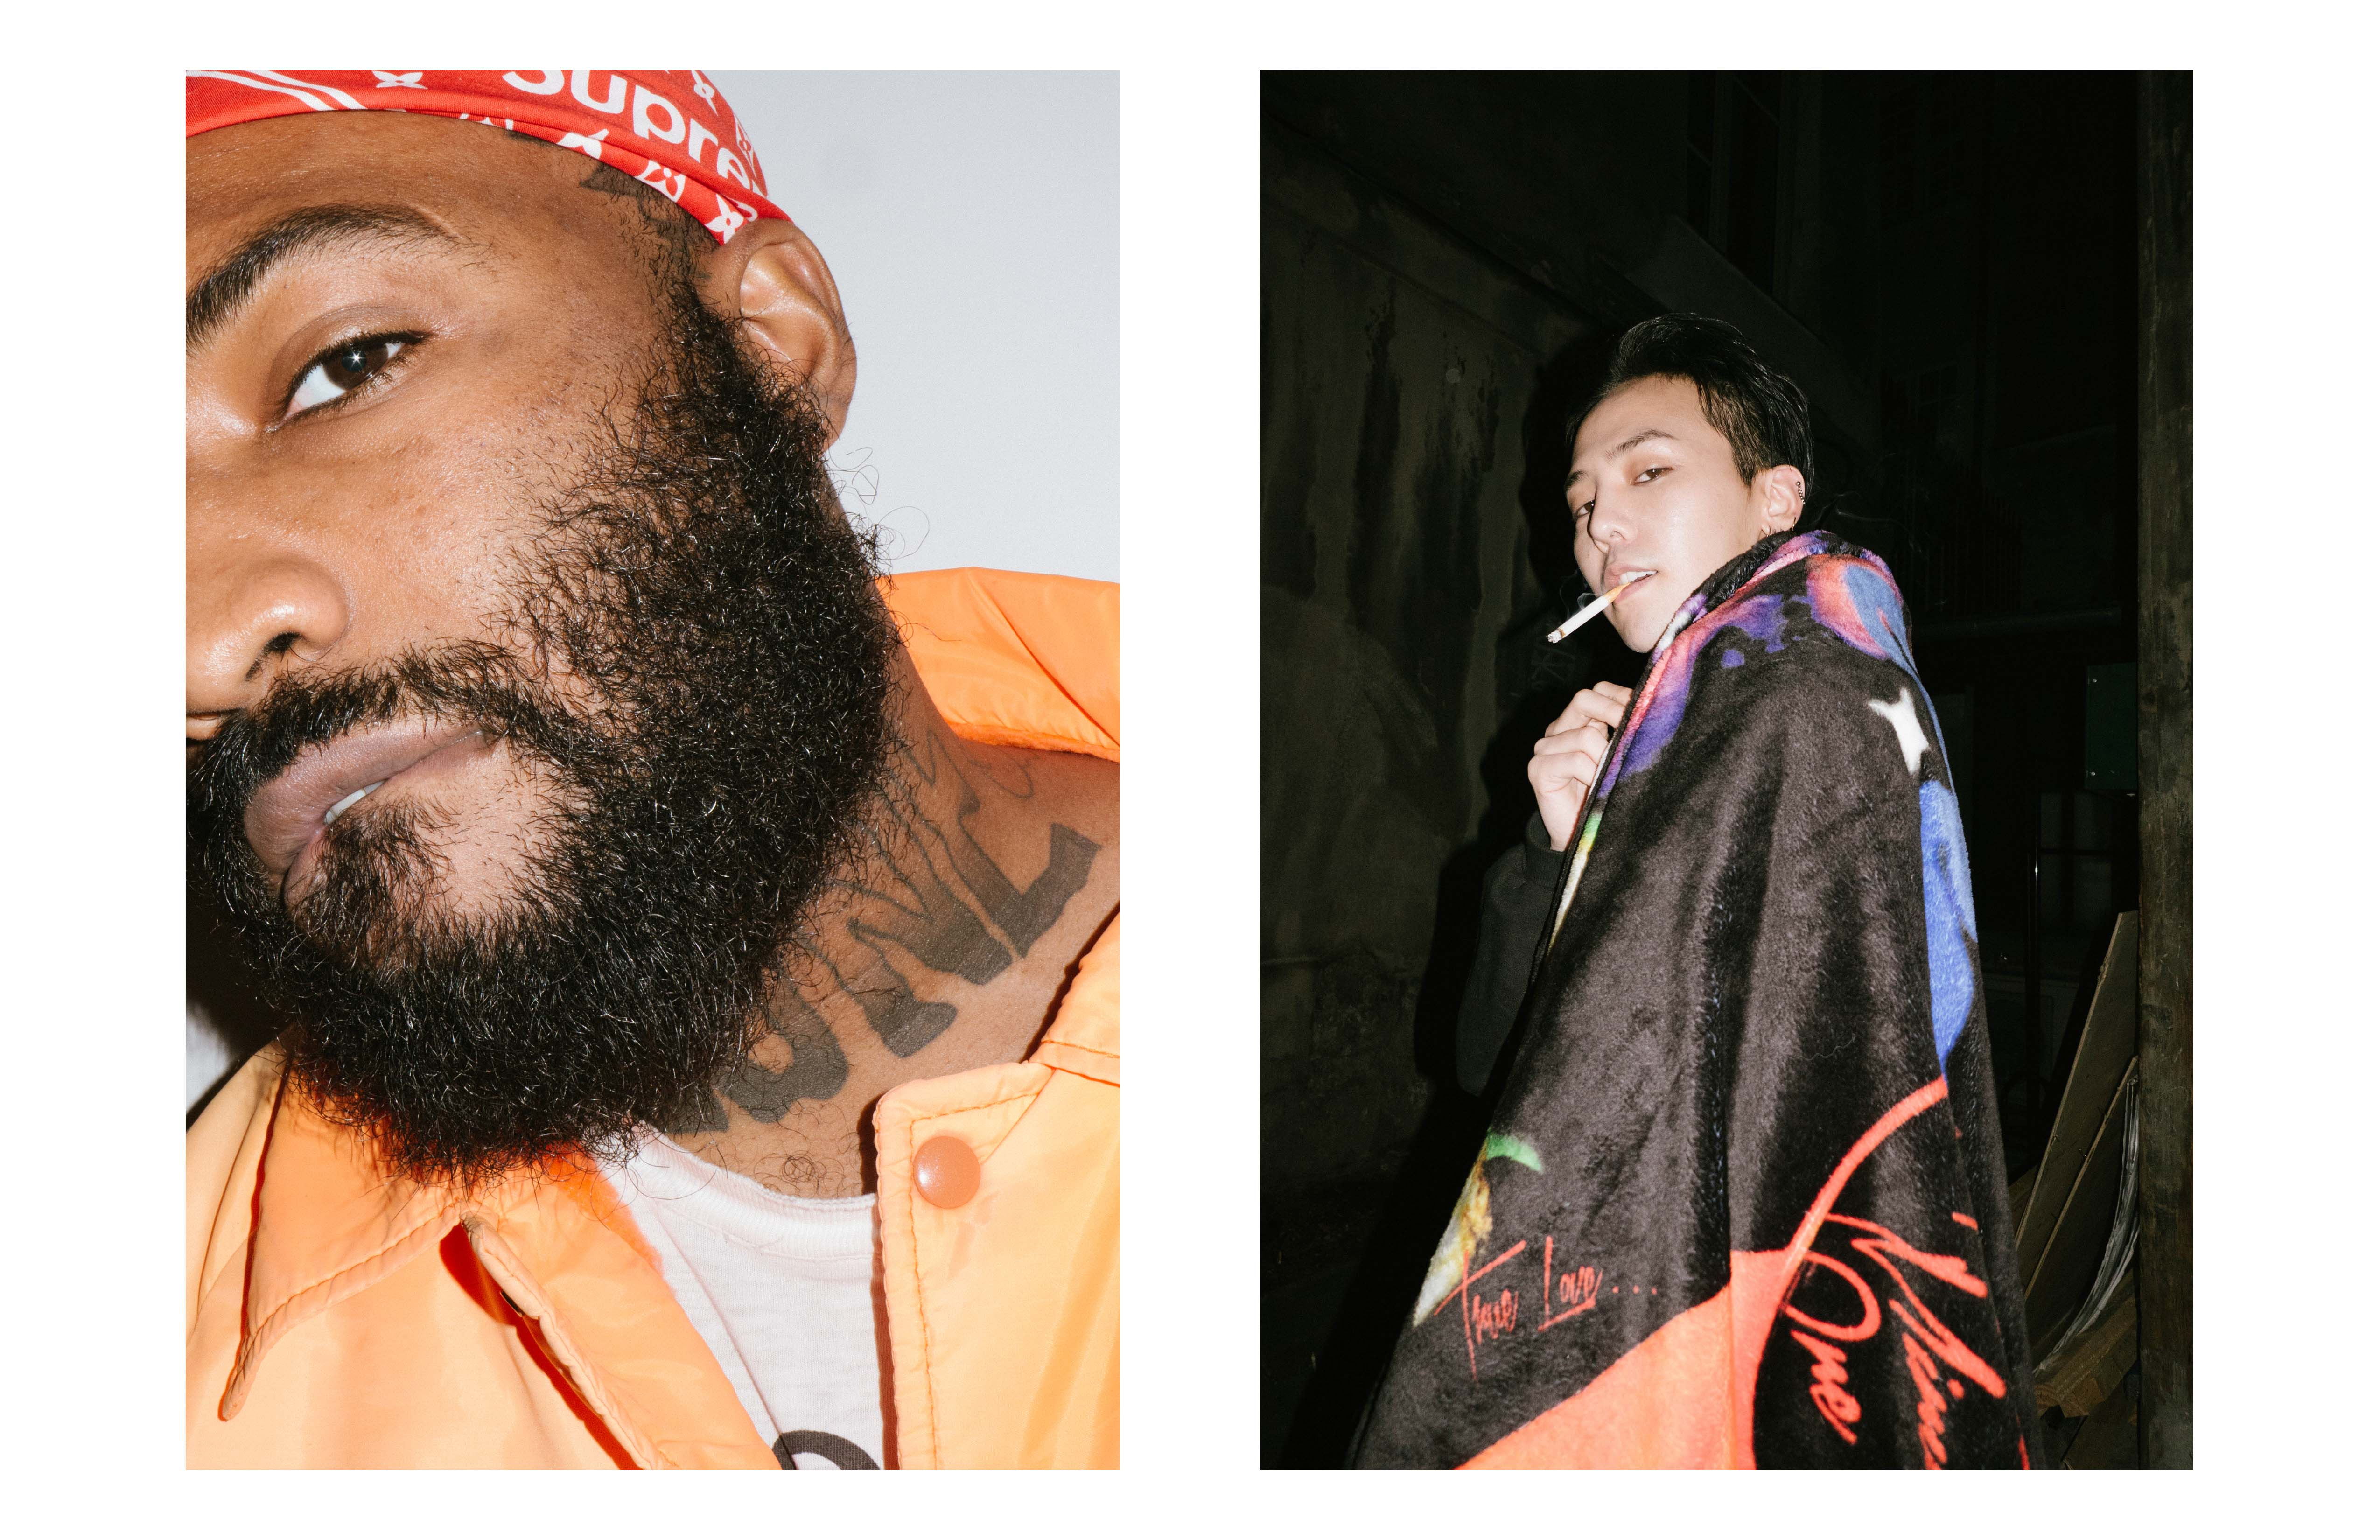 ASAP Bari, G-Dragon